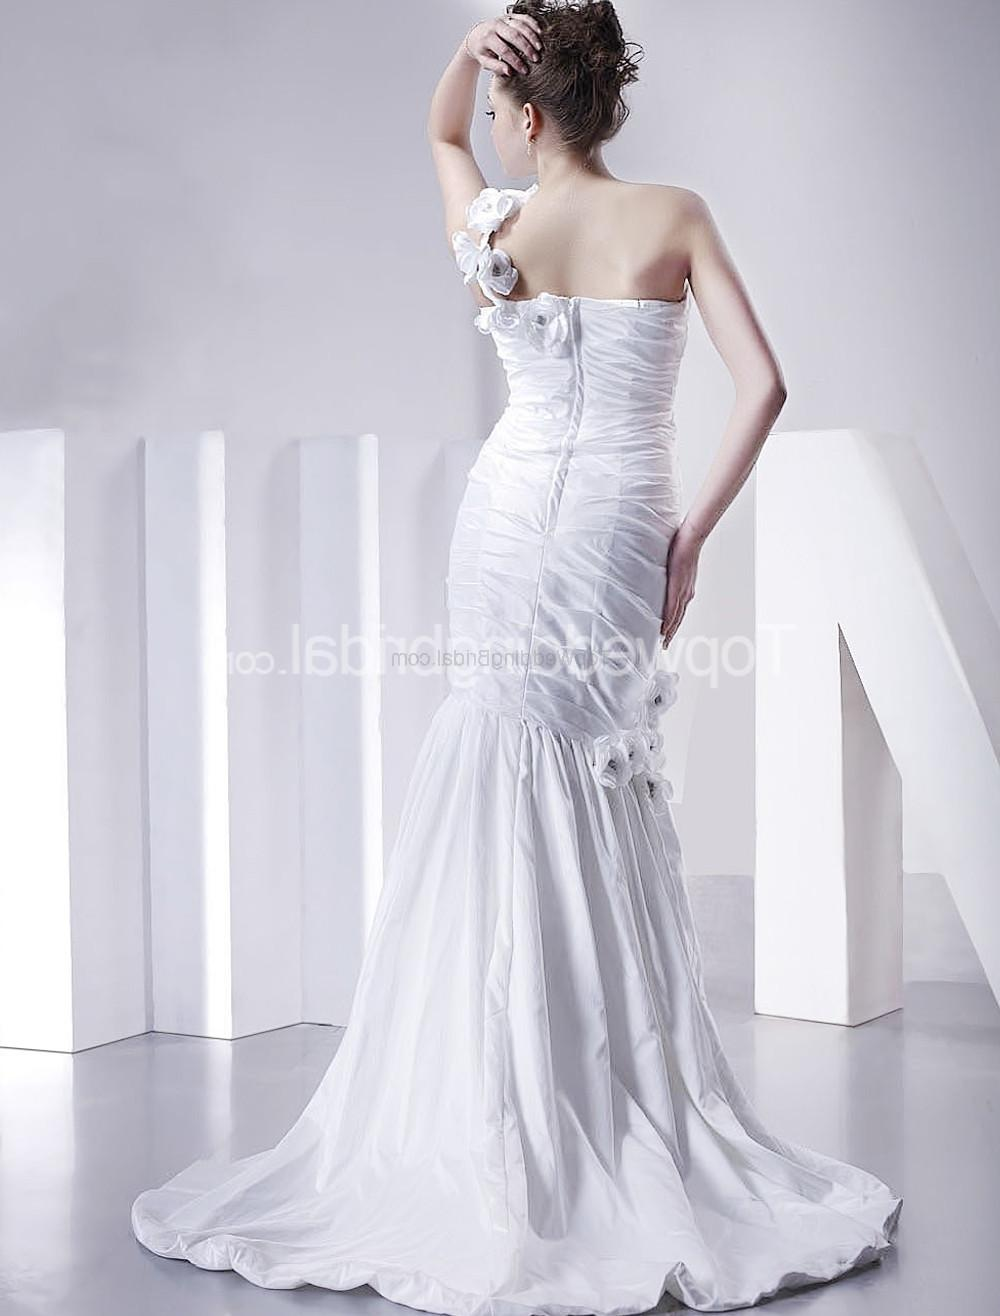 Gown. White One Shoulder